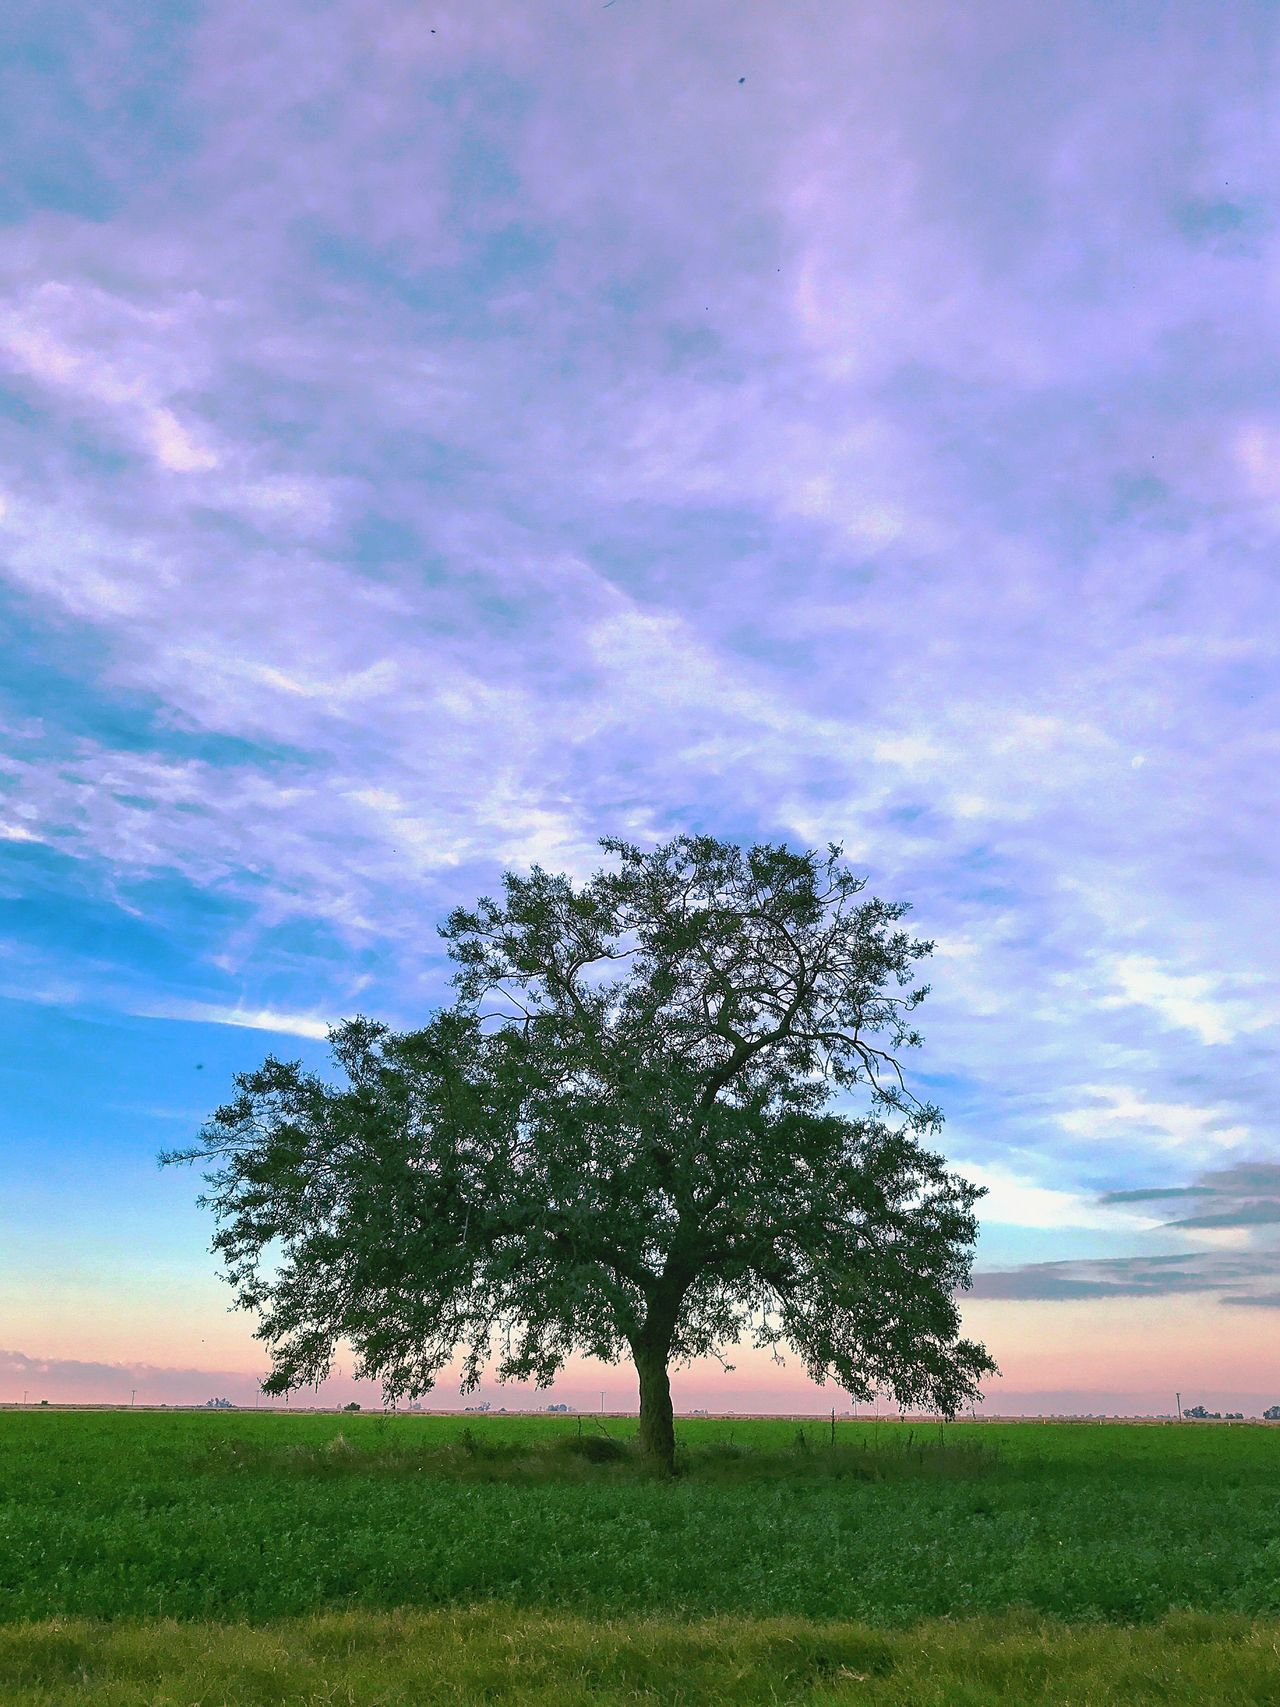 Tree Field Landscape Nature Beauty In Nature Sky Lone Isolated Scenics Growth Outdoors No People Grass Day The Great Outdoors - 2017 EyeEm Awards